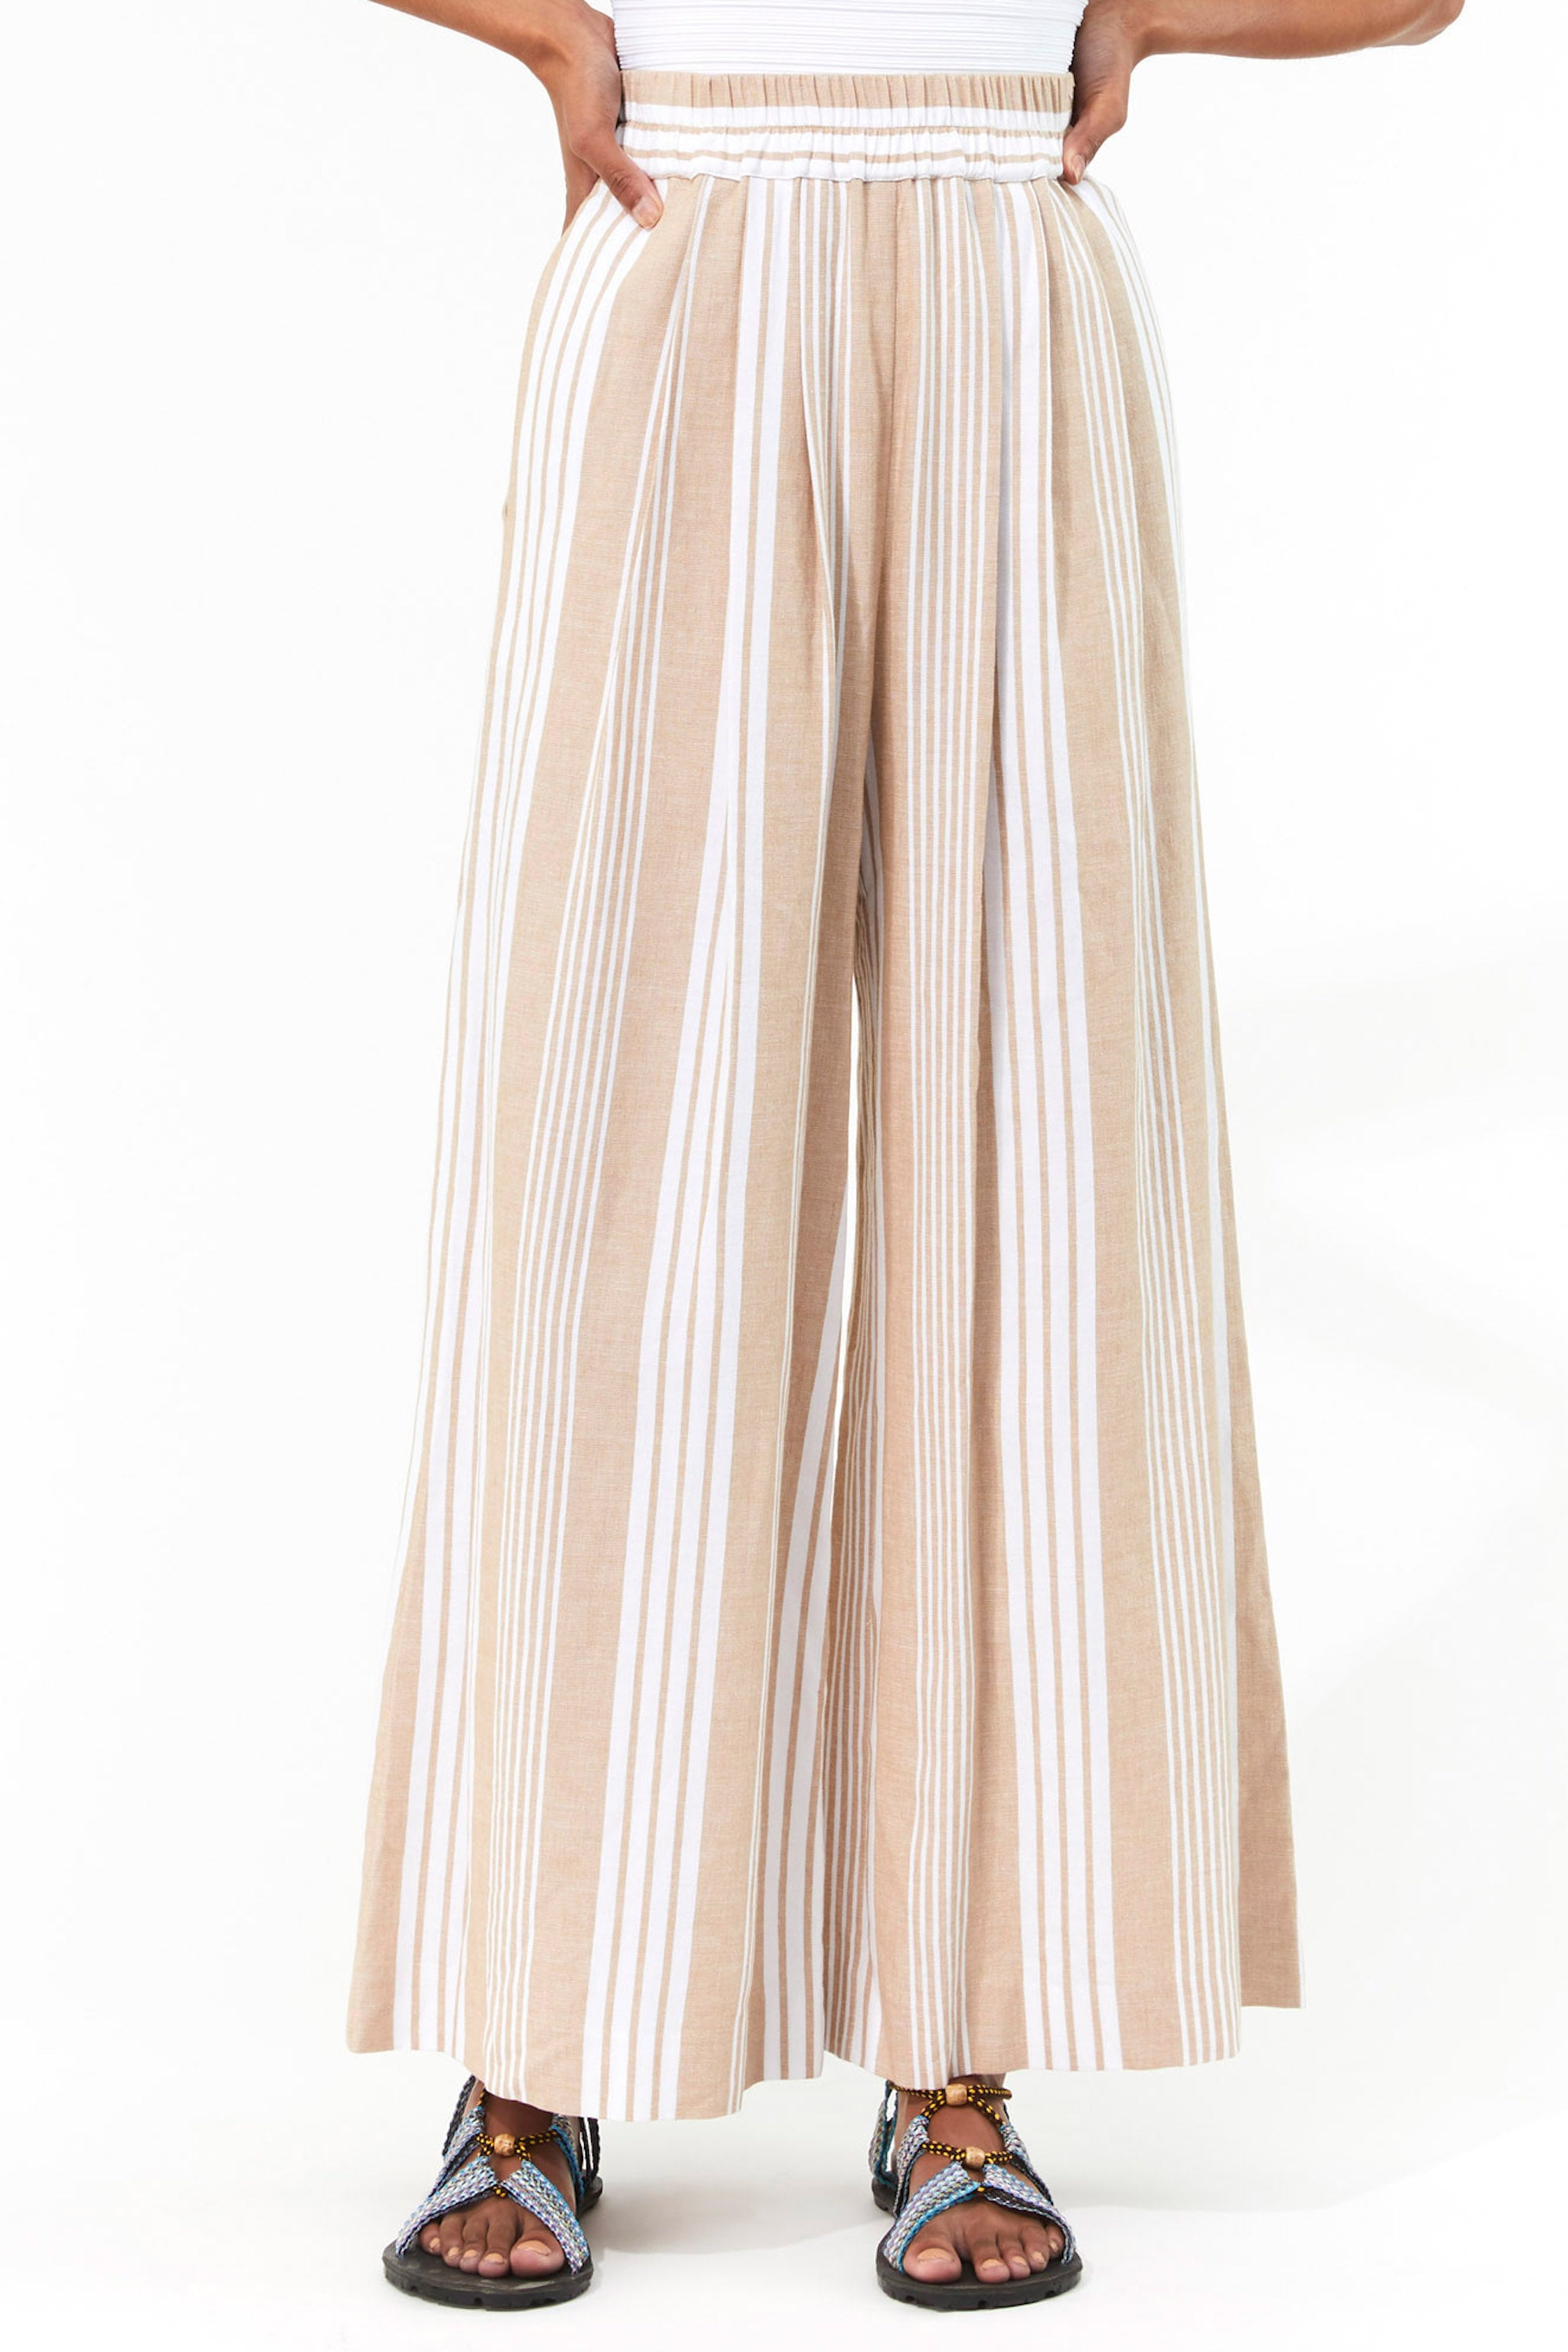 Mara Hoffman White Sand Paloma Cover Up Pant in TENCEL Lyocell and organic cotton (front detail)